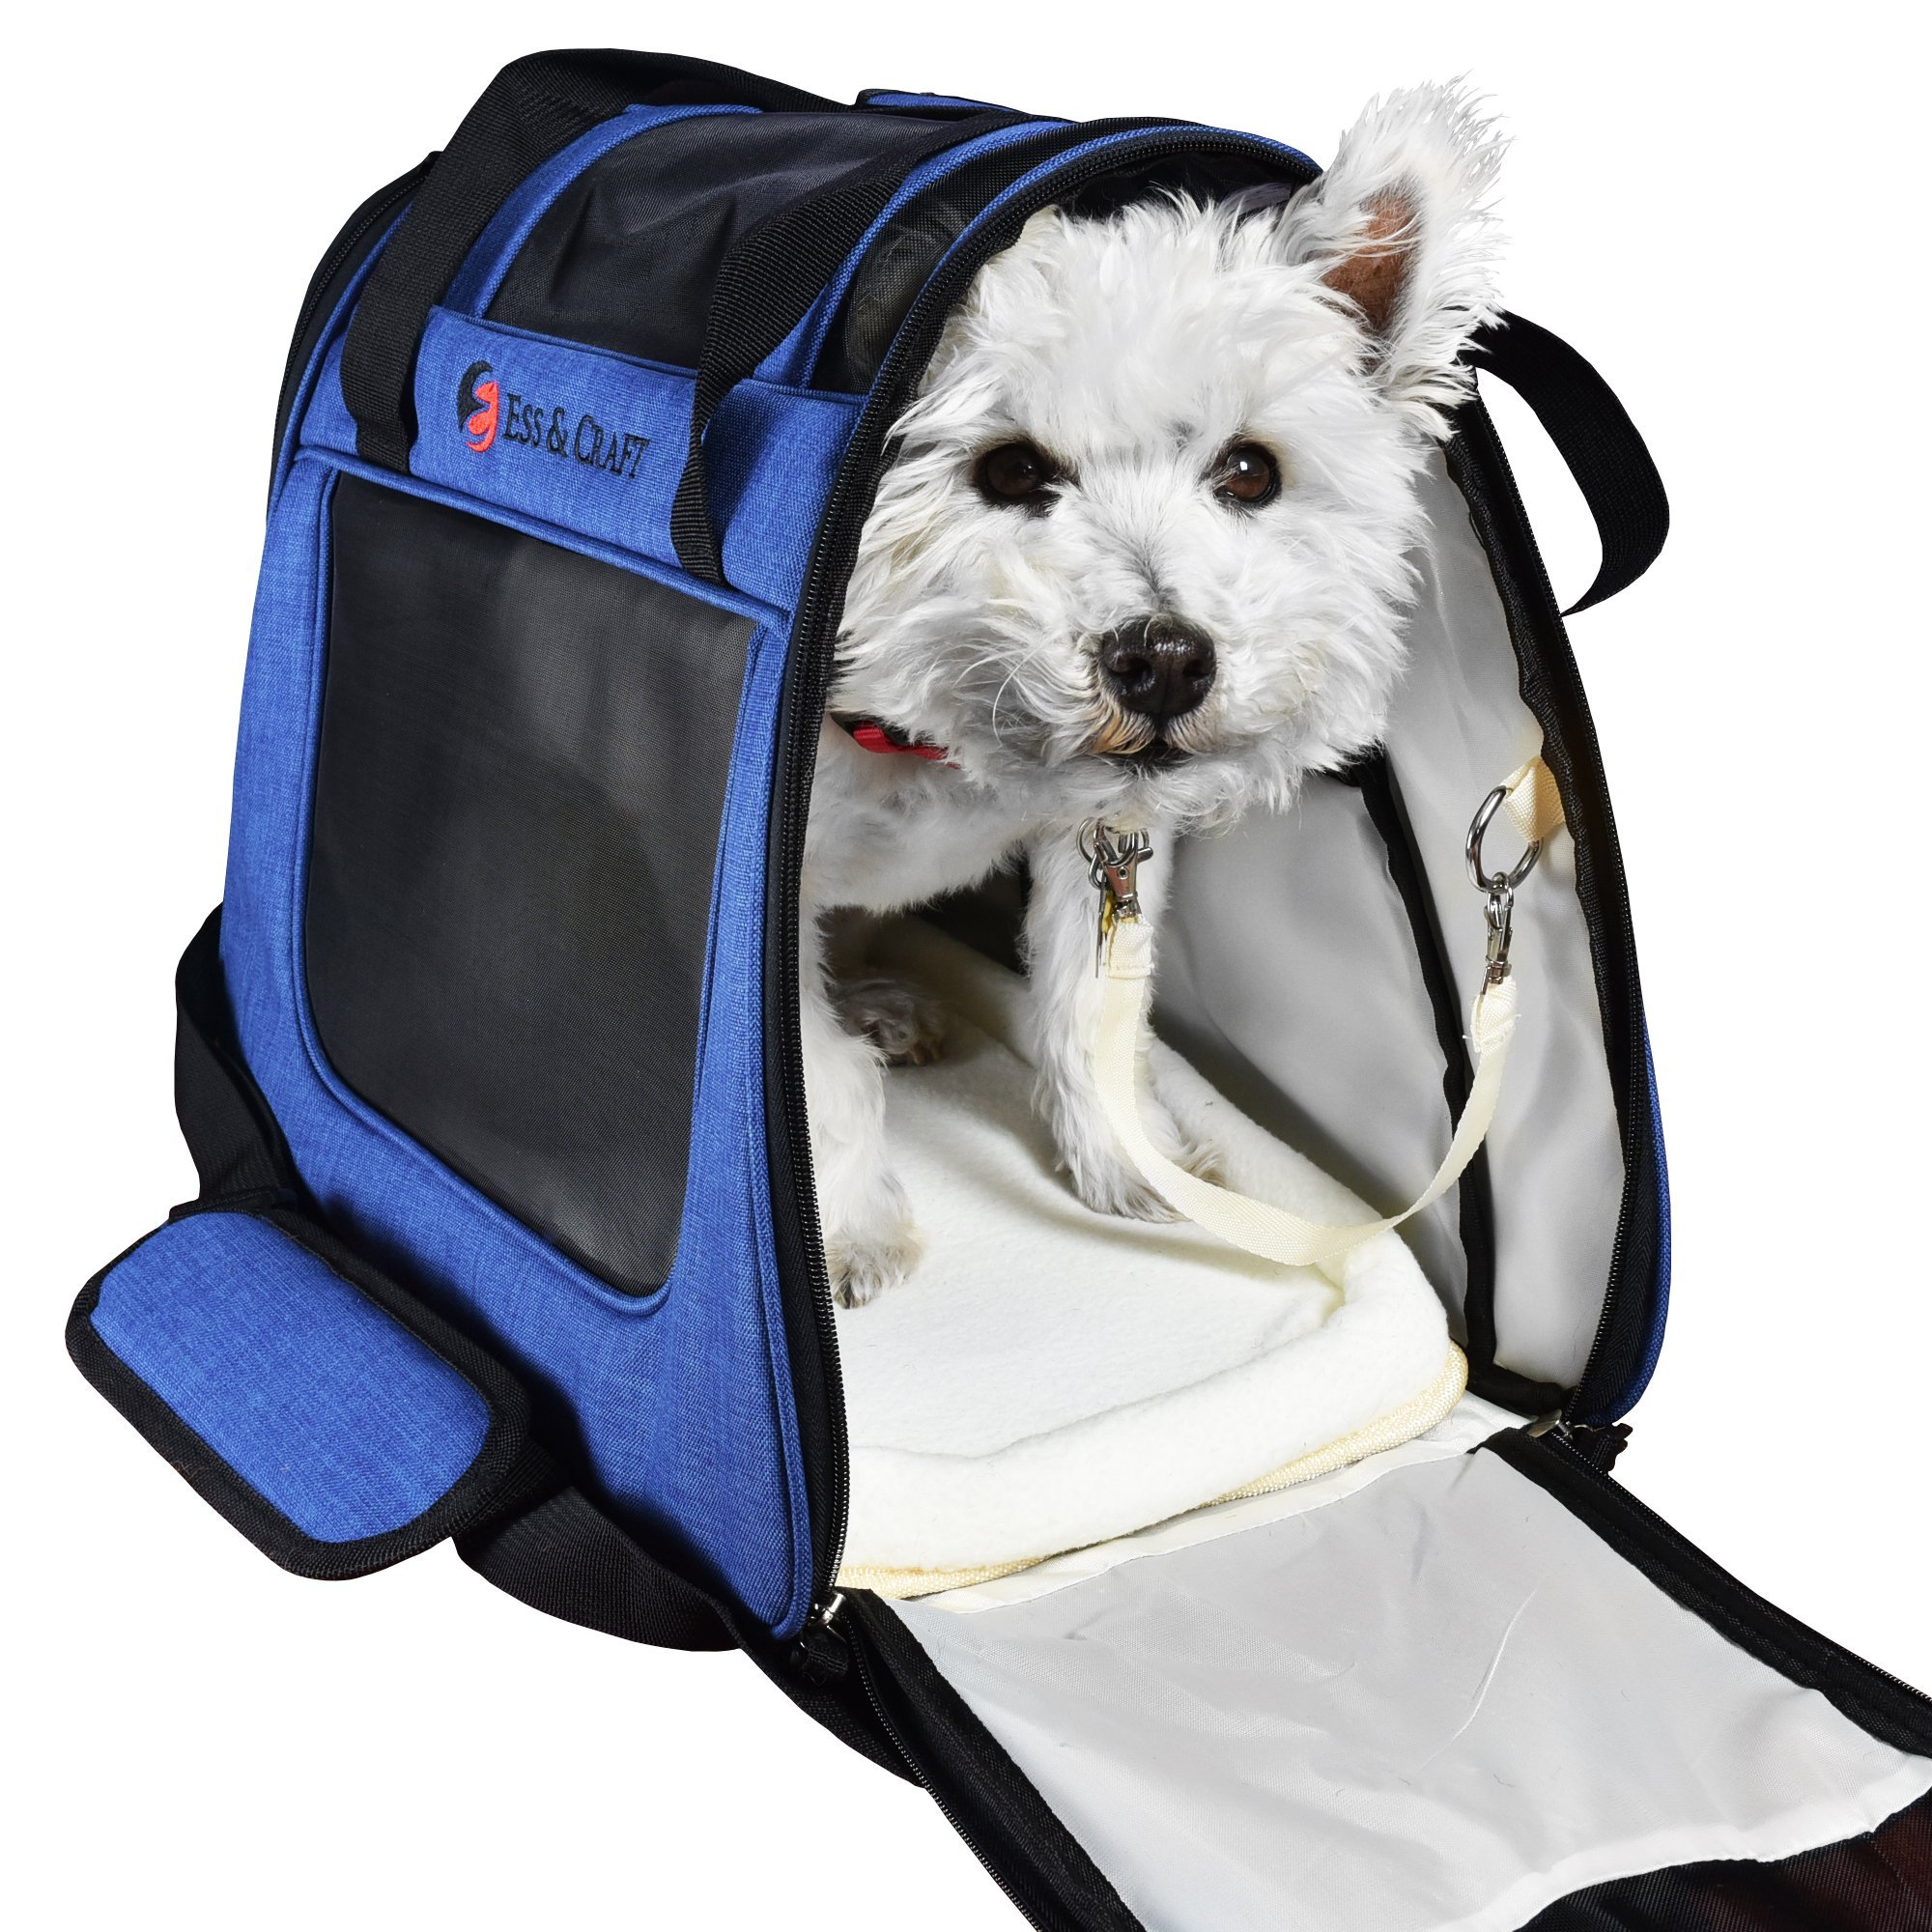 Ess and Craft Pet Carrier 2 Tone Blue Airline Approved | Side Loading Travel Bag with Sturdy Bottom & Fleece Bed | Ventilated Pouch with Top Comfy Handle & Zipper Locks | for Dogs, Cats, Small Pets